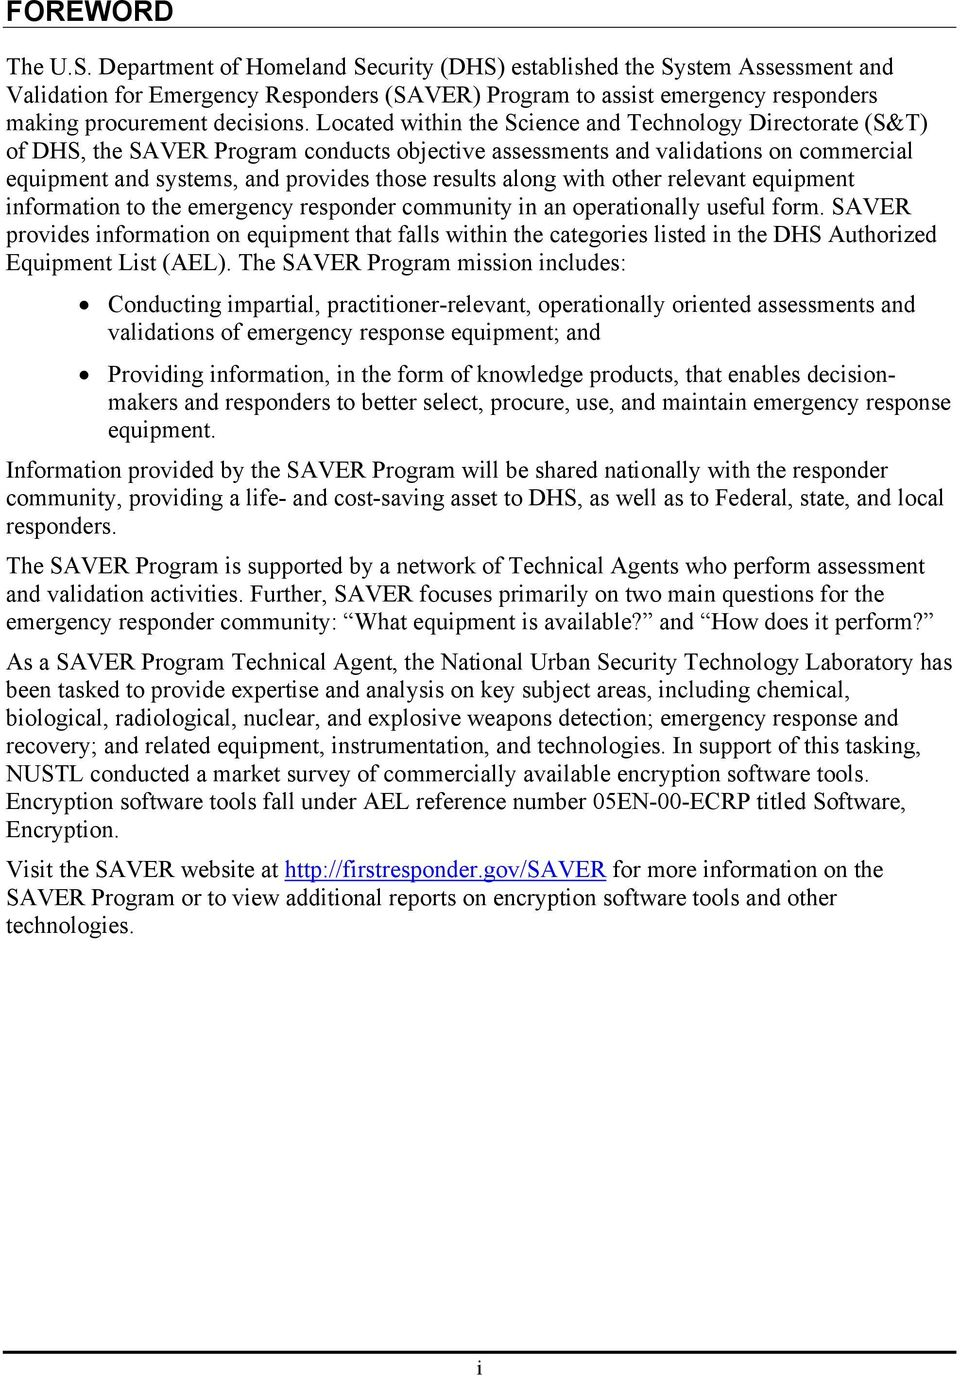 Located within the Science and Technology Directorate (S&T) of DHS, the SAVER Program conducts objective assessments and validations on commercial equipment and systems, and provides those results